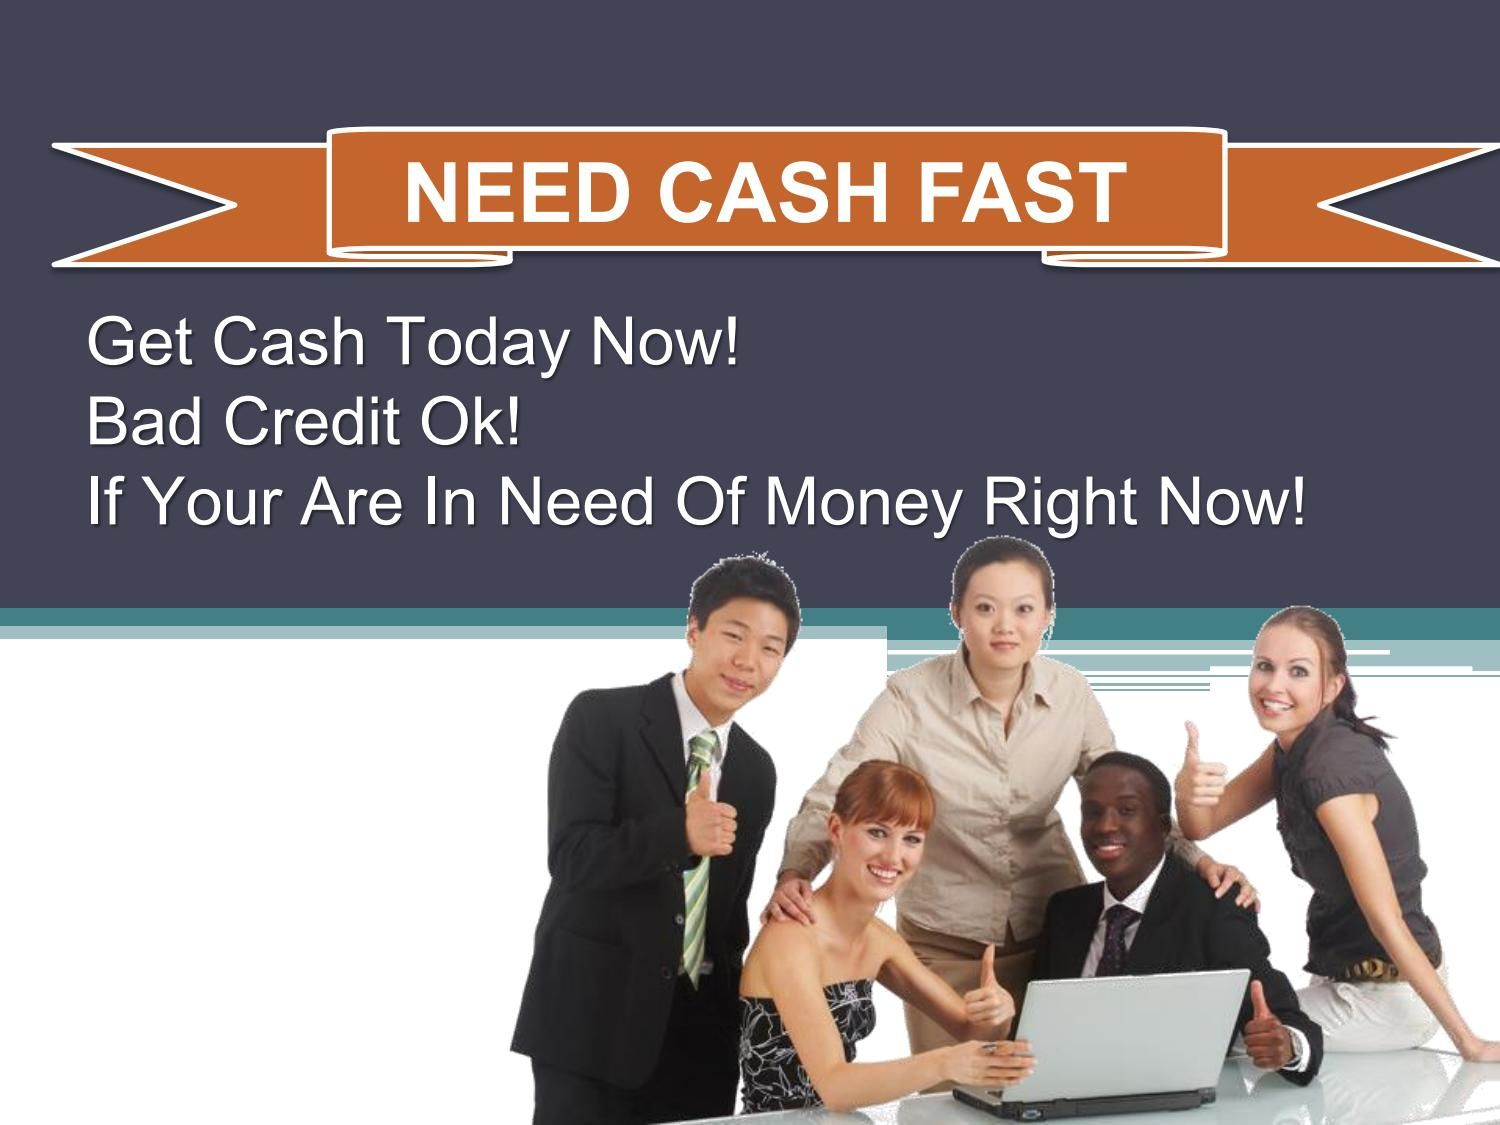 All night payday loans image 8